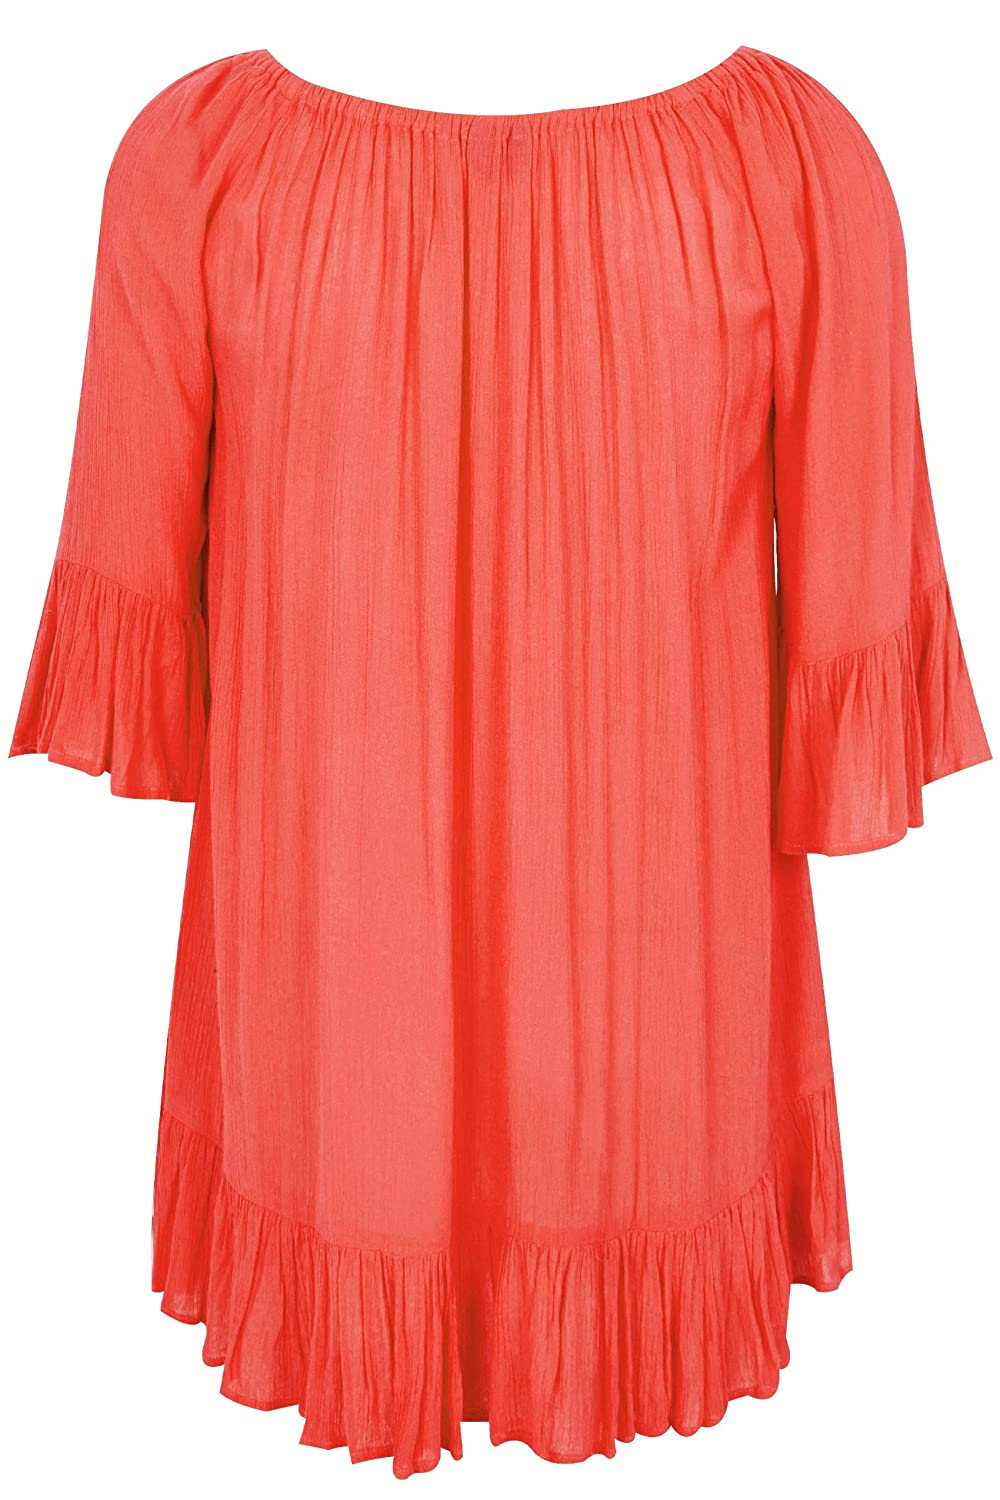 c5fd061032c5b Yours Women s Plus Size Coral Bardot Gypsy Top with Beaded Details   Flute  Sleeves  Amazon.co.uk  Clothing